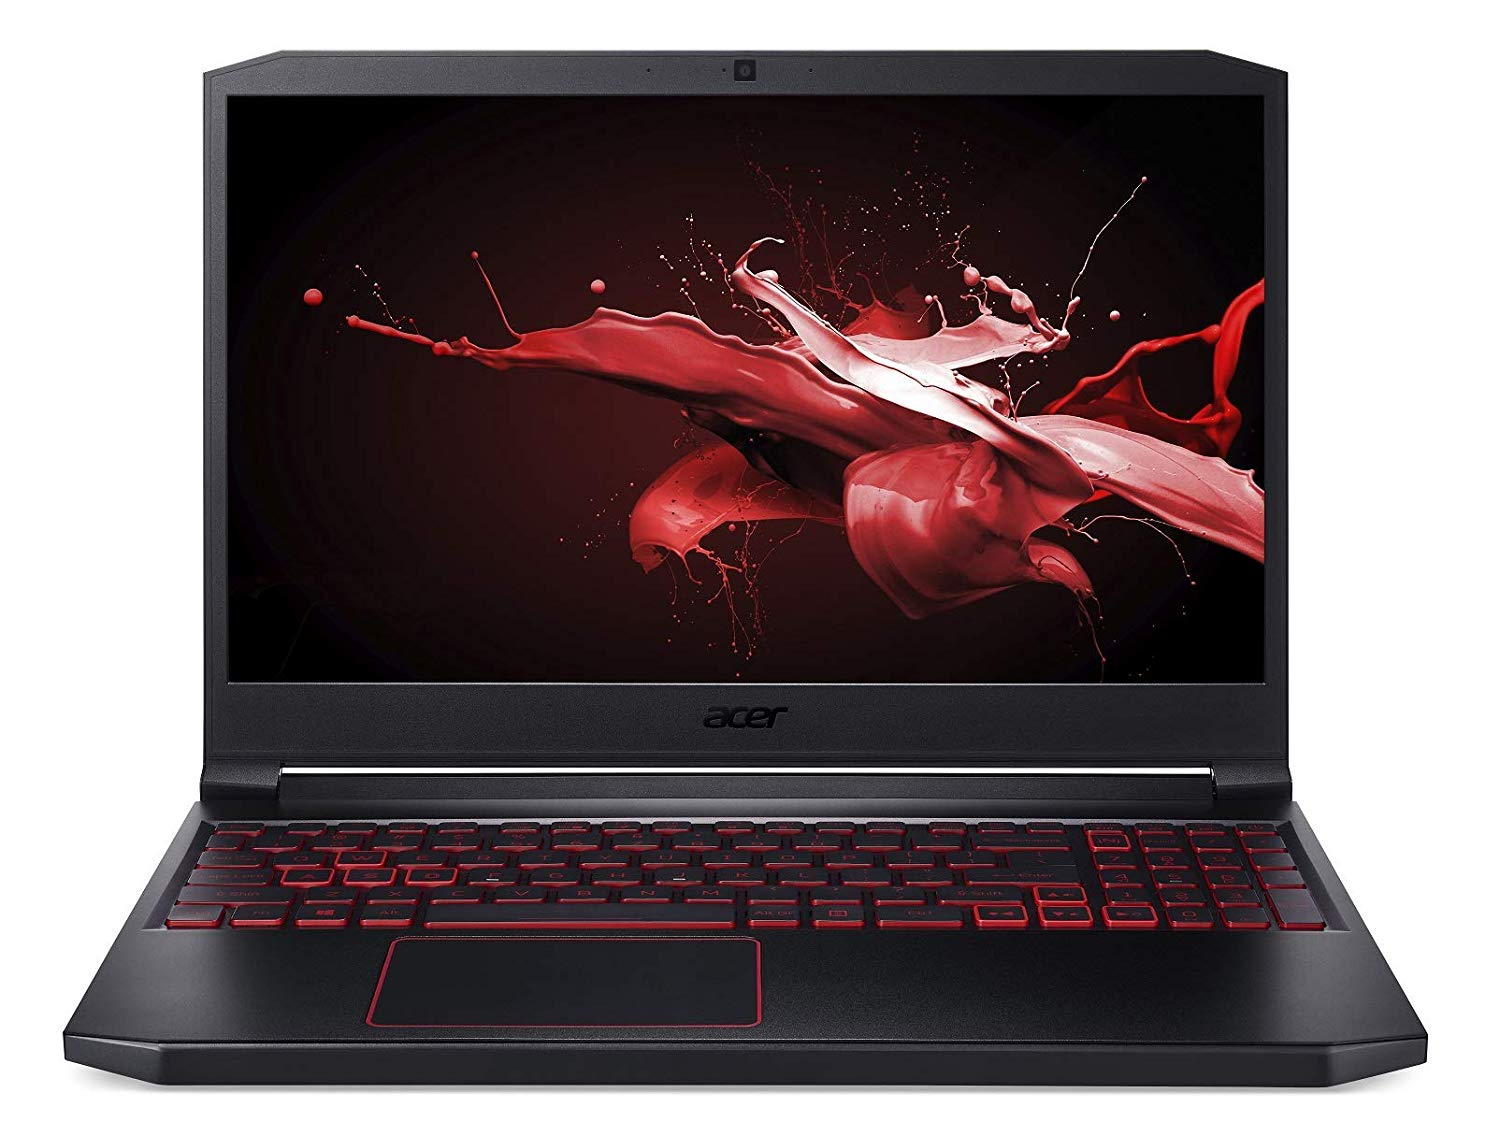 Acer Nitro 7 Intel Core i7 Gaming Laptop